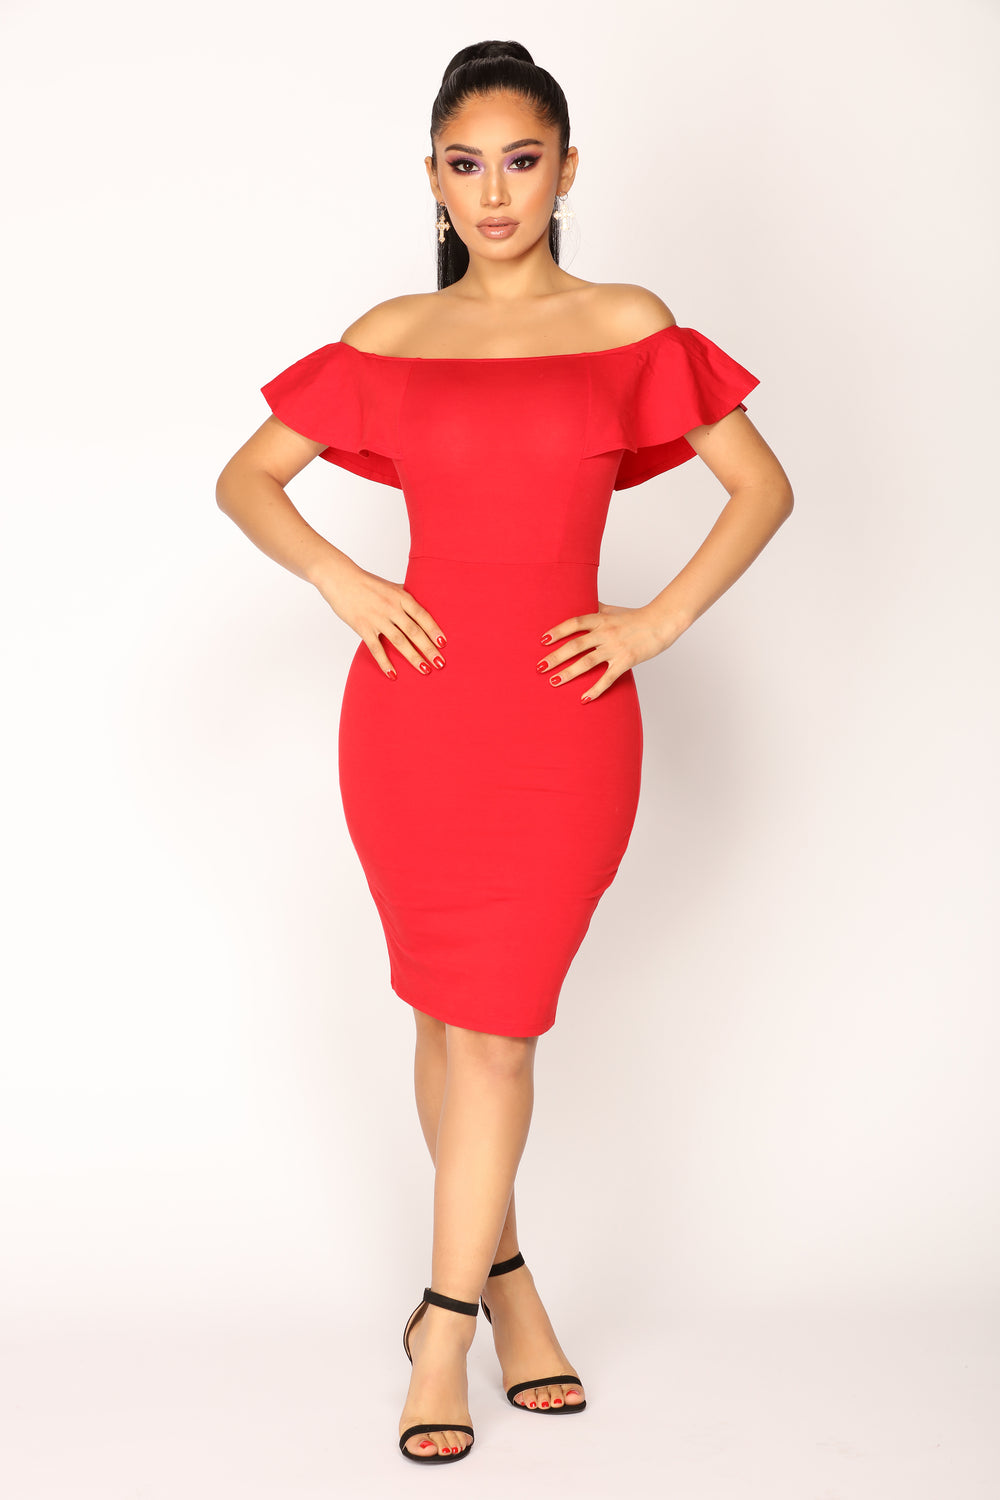 Berenice Flounce Dress - Red